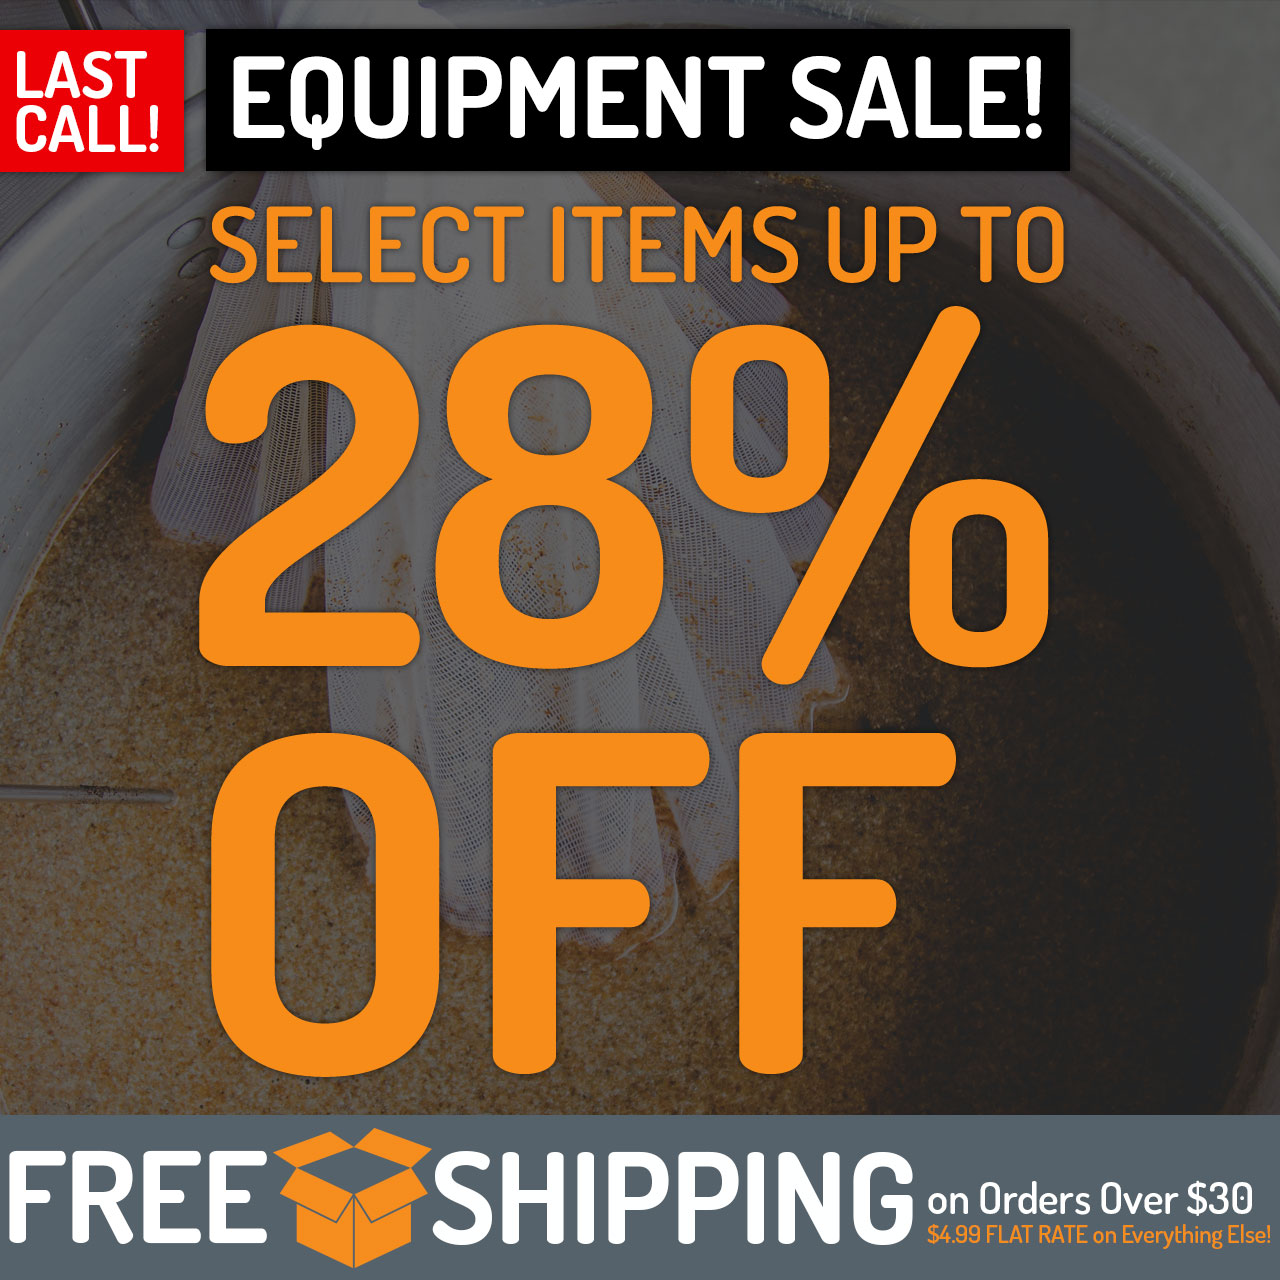 Save up to 28% on select equipment.